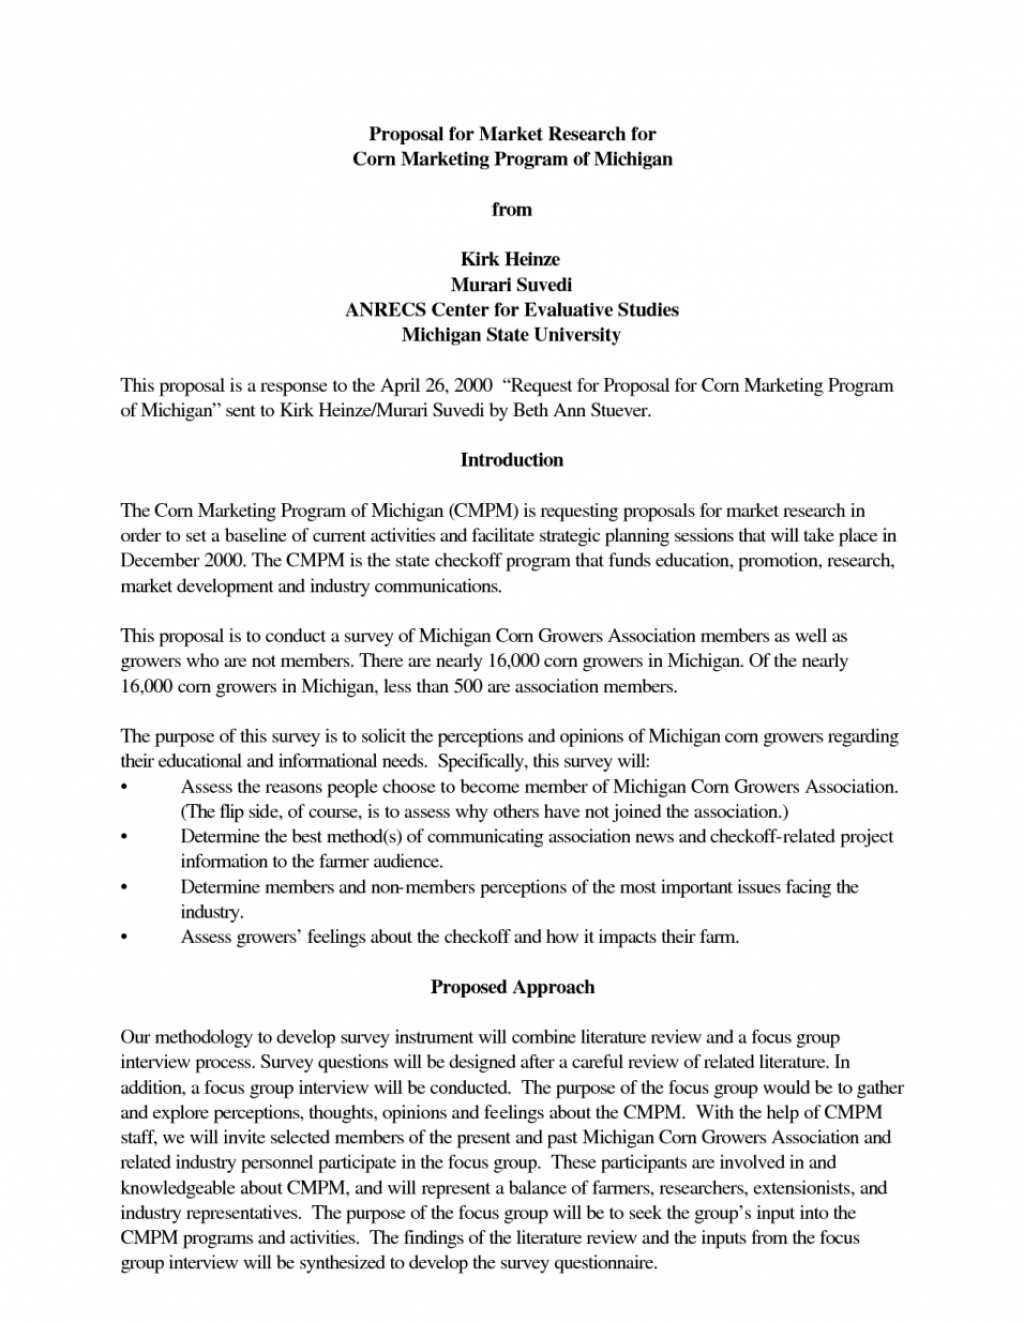 015 Research Paper Example Of History Unbelievable A Proposal Large